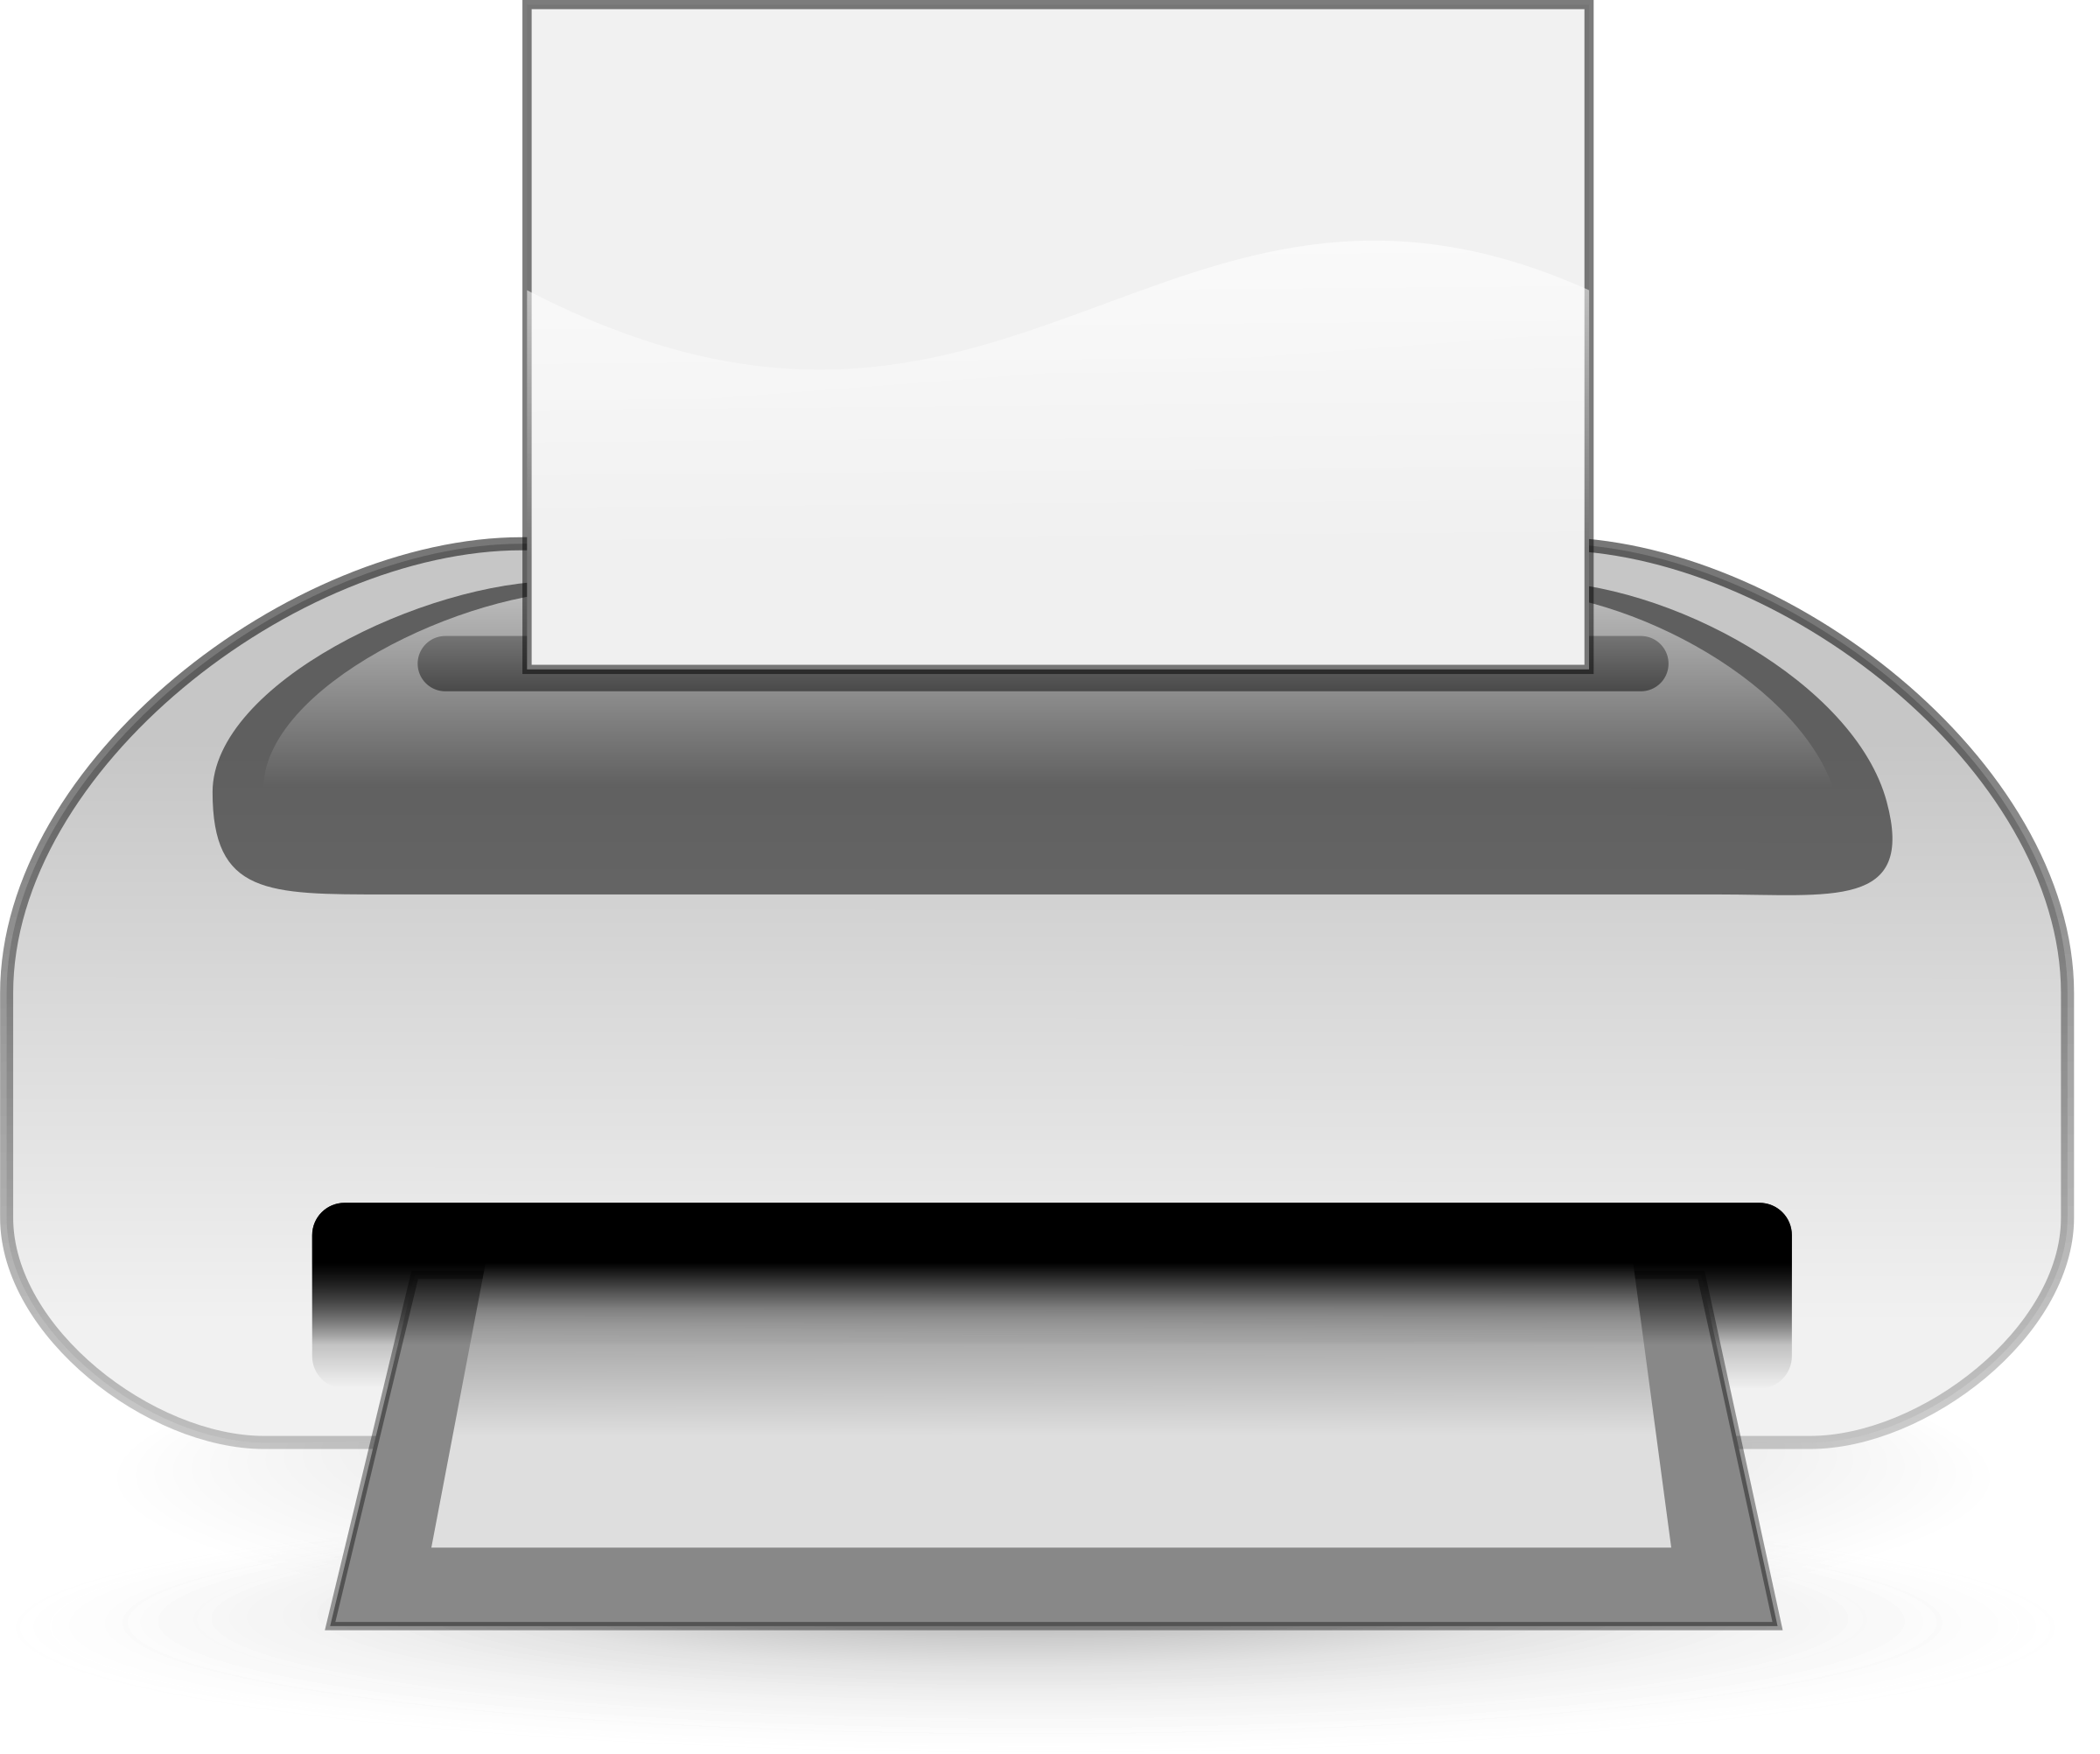 Printer Clip Art Clipart - printer